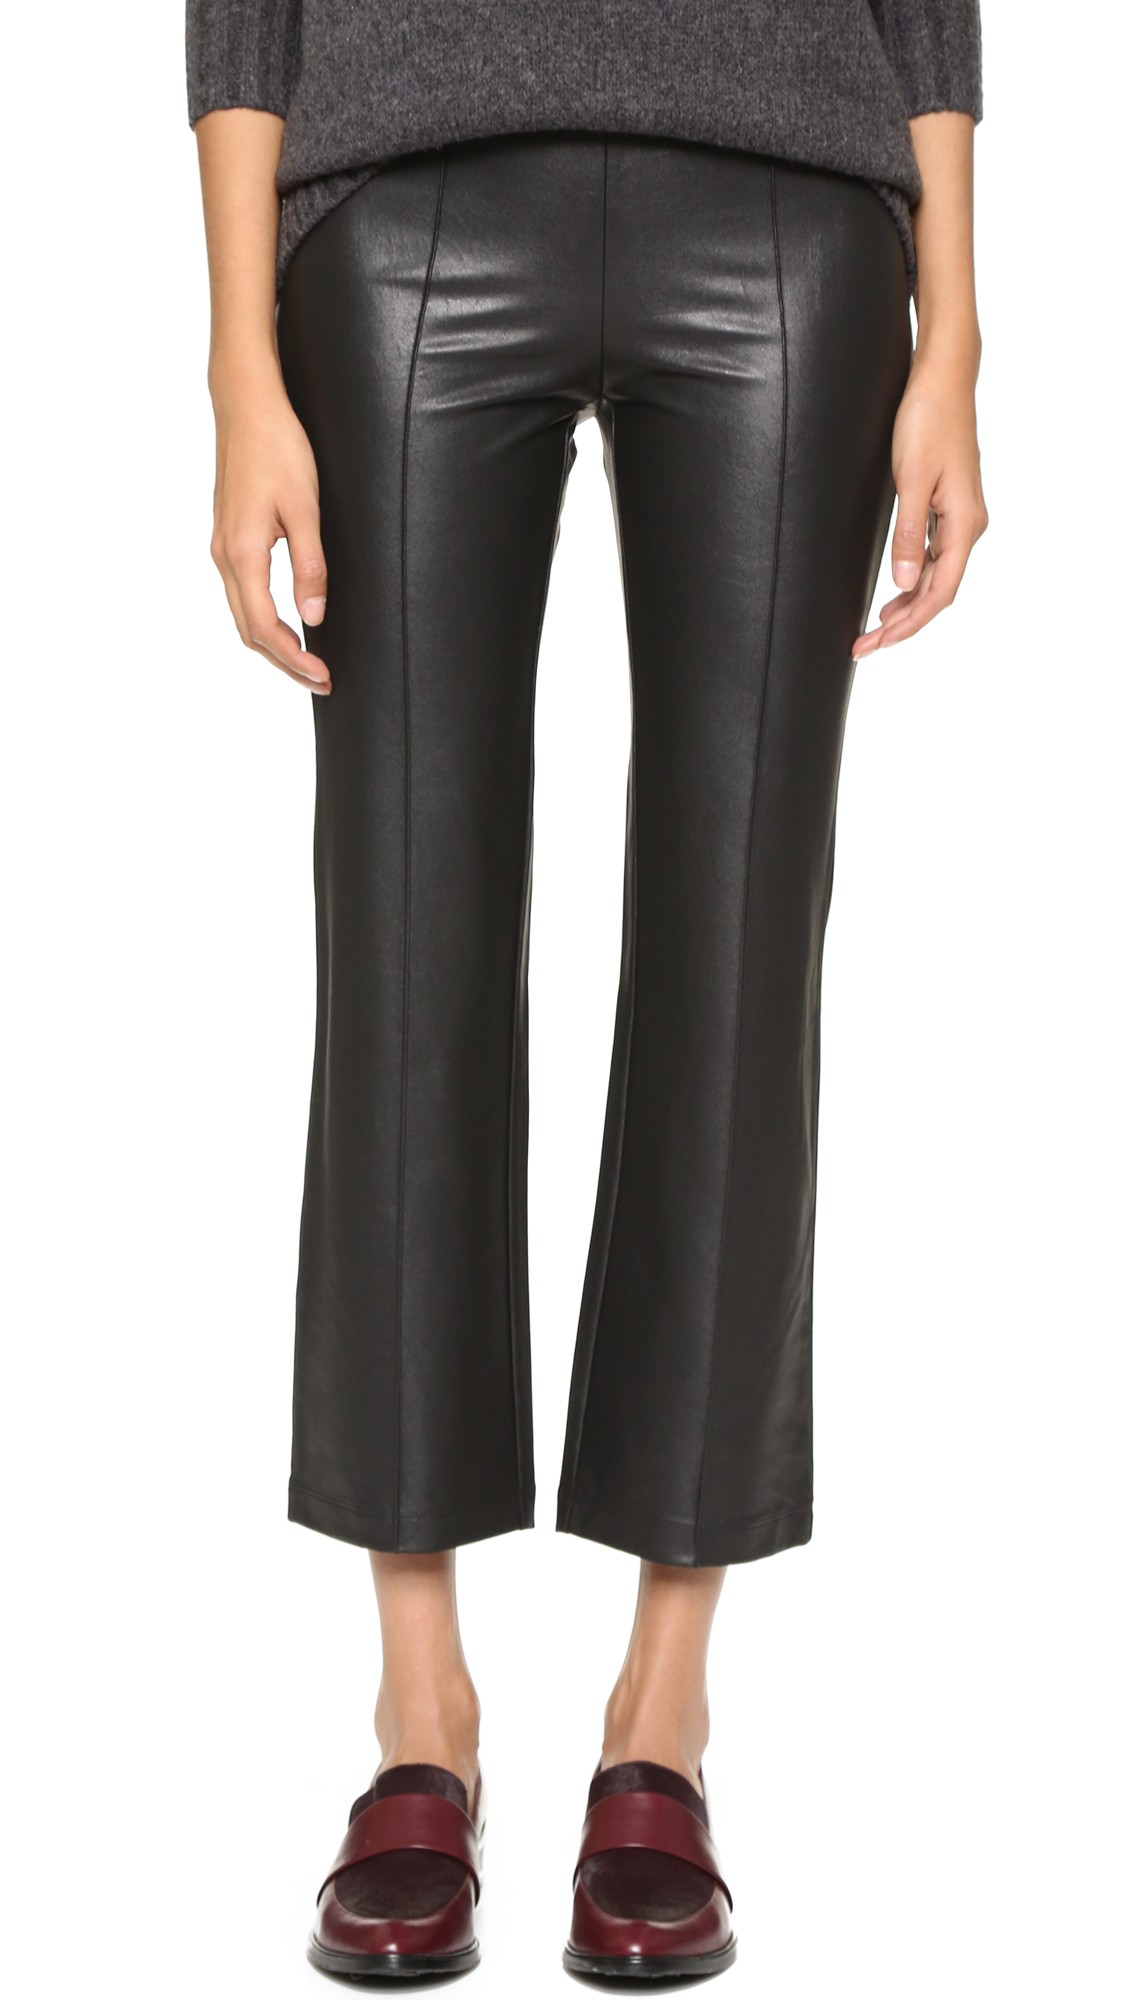 061148f97aaf4e Gallery. Previously sold at: Shopbop · Women's Black Leather Trousers  Women's Faux Leather Trousers